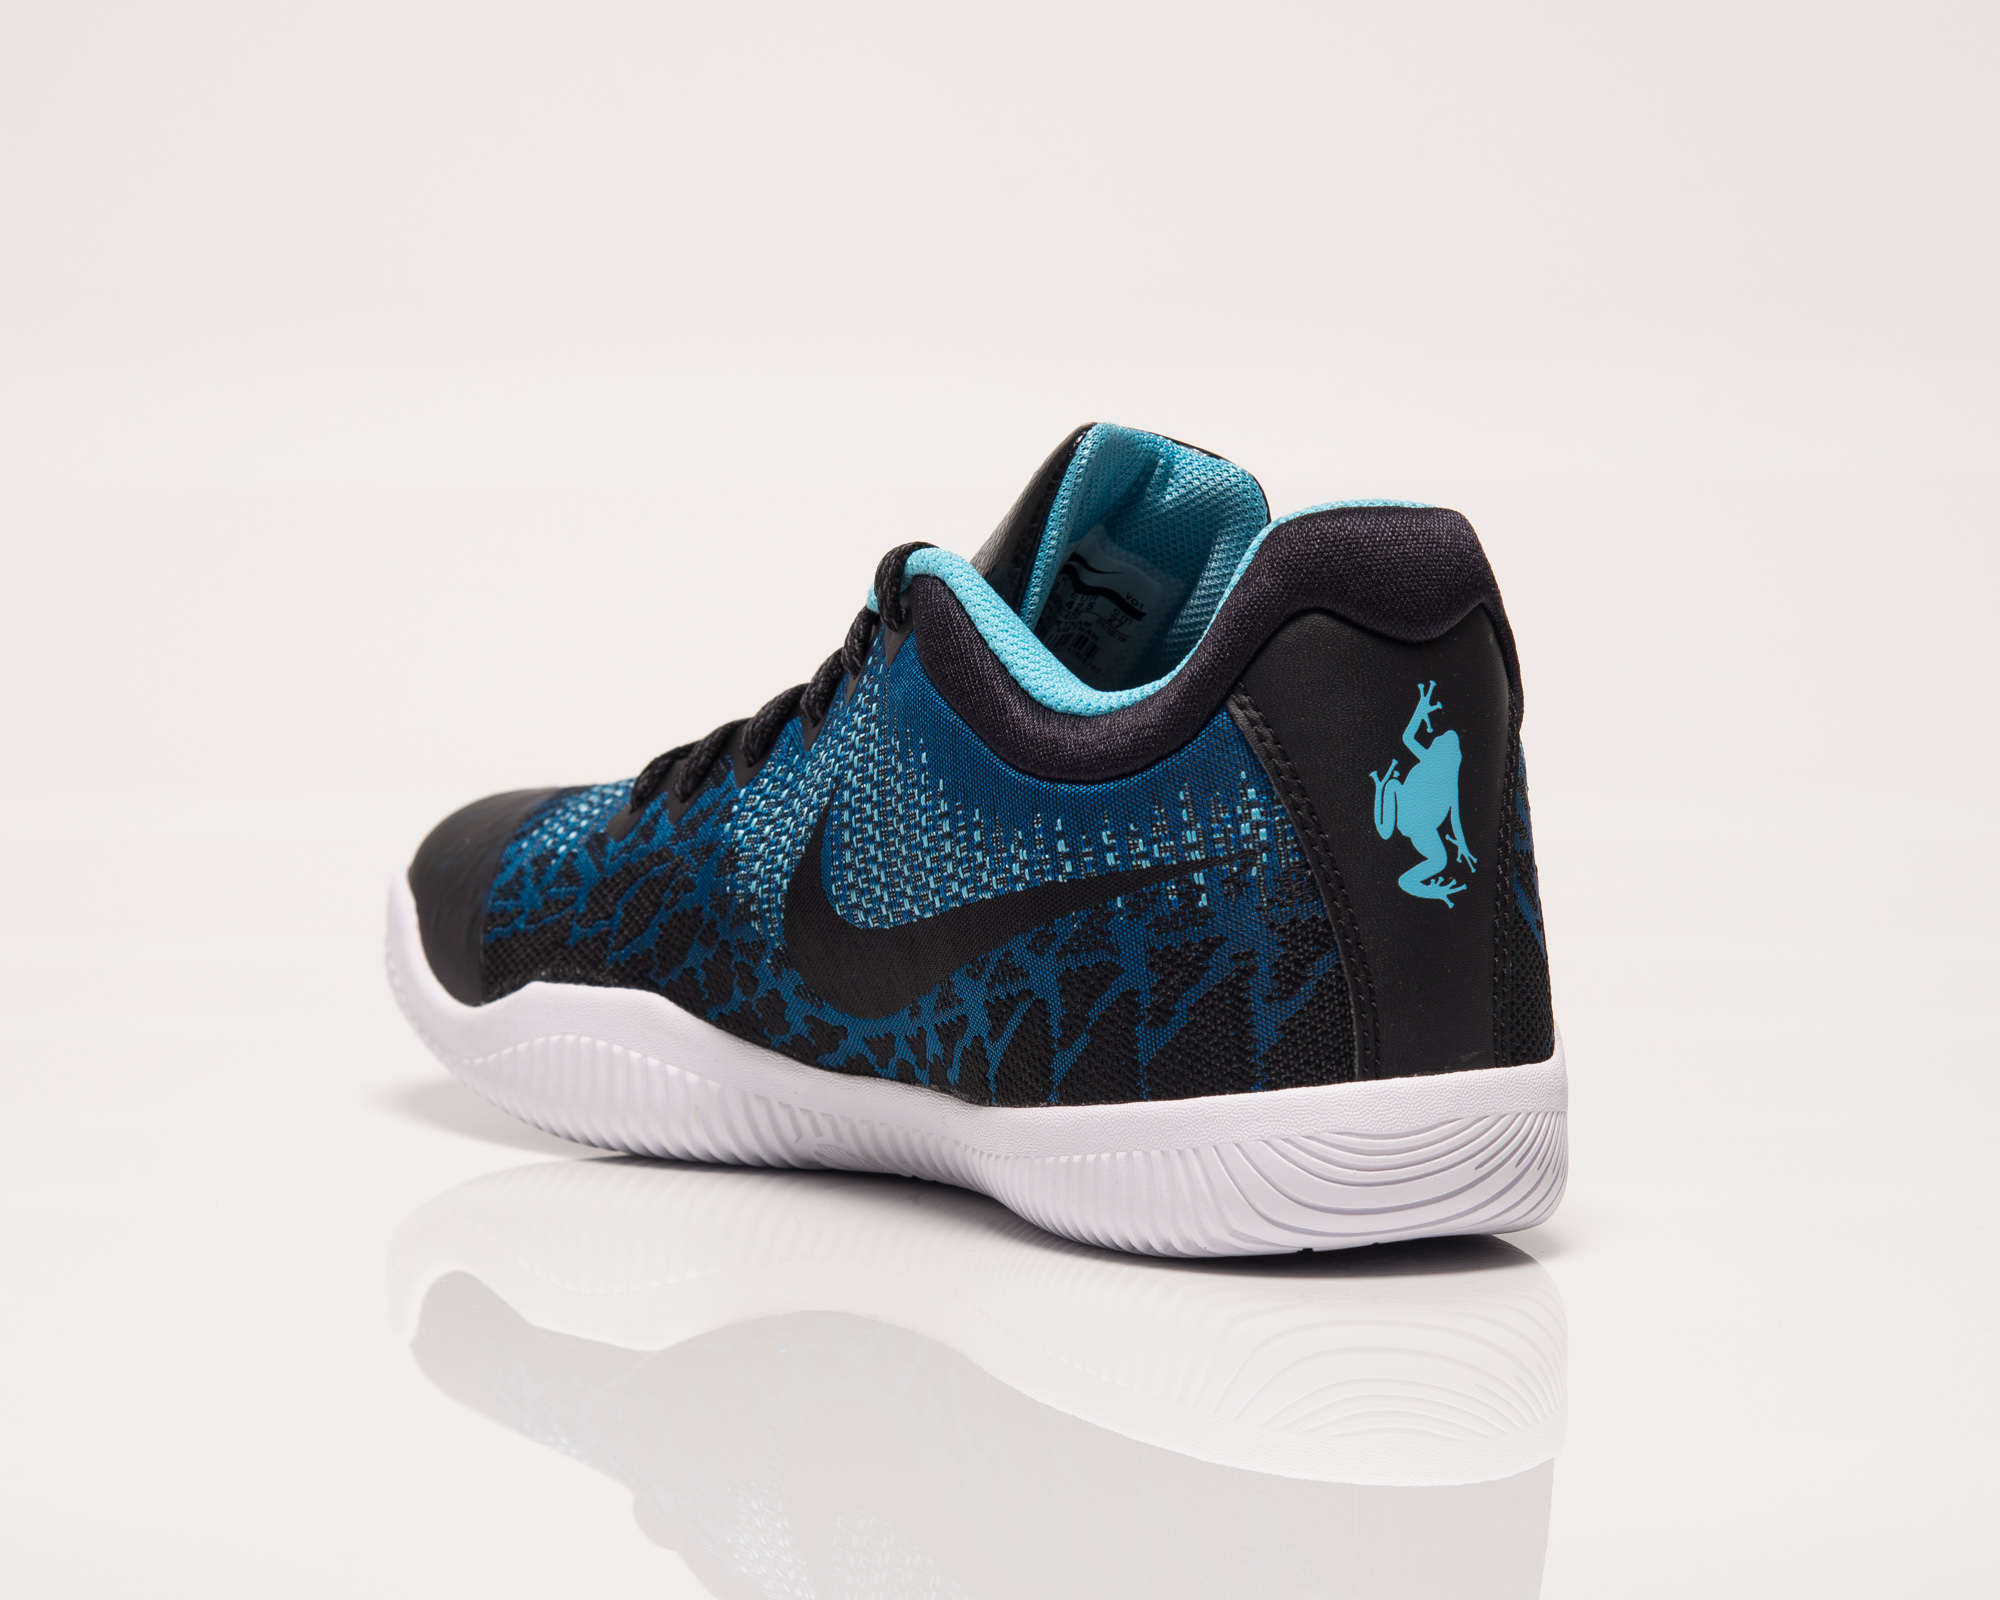 Kd Shoes Mens